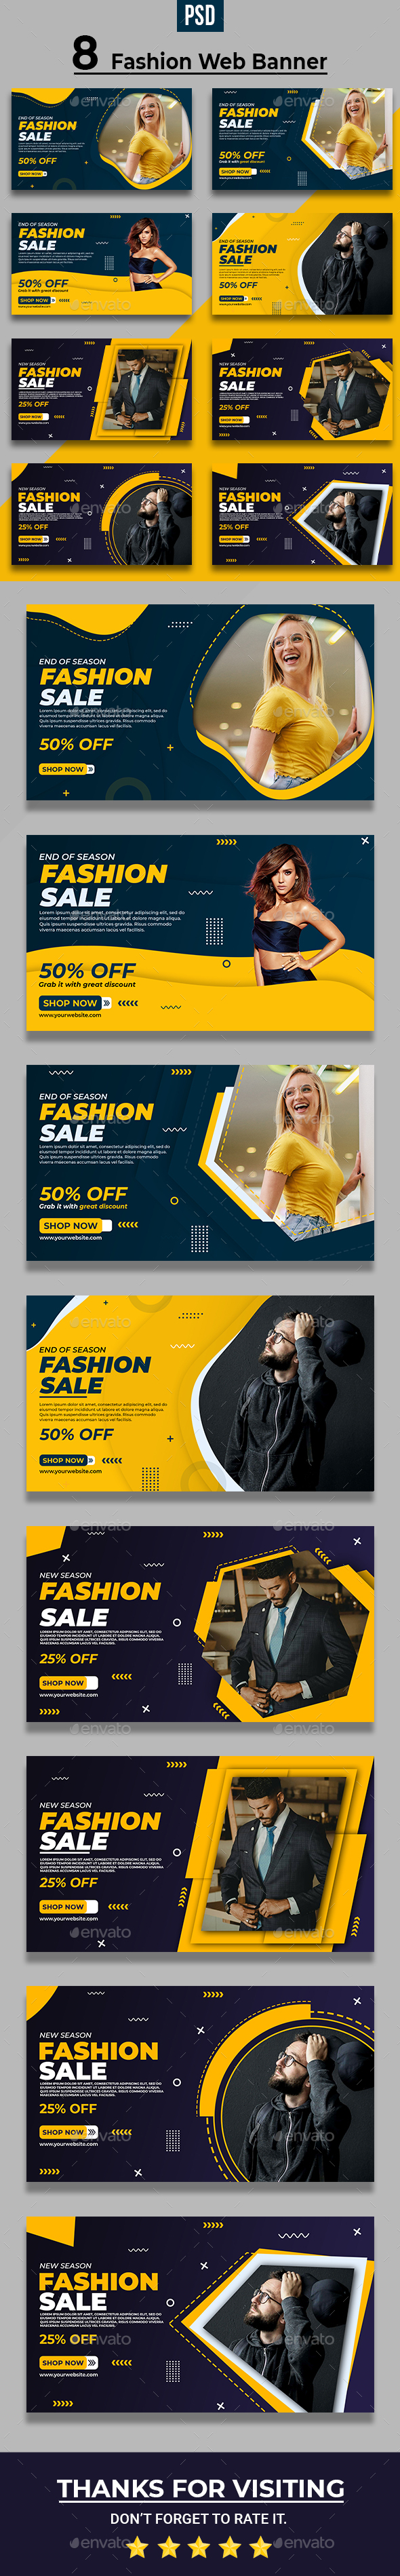 Fashion Web Banner Template